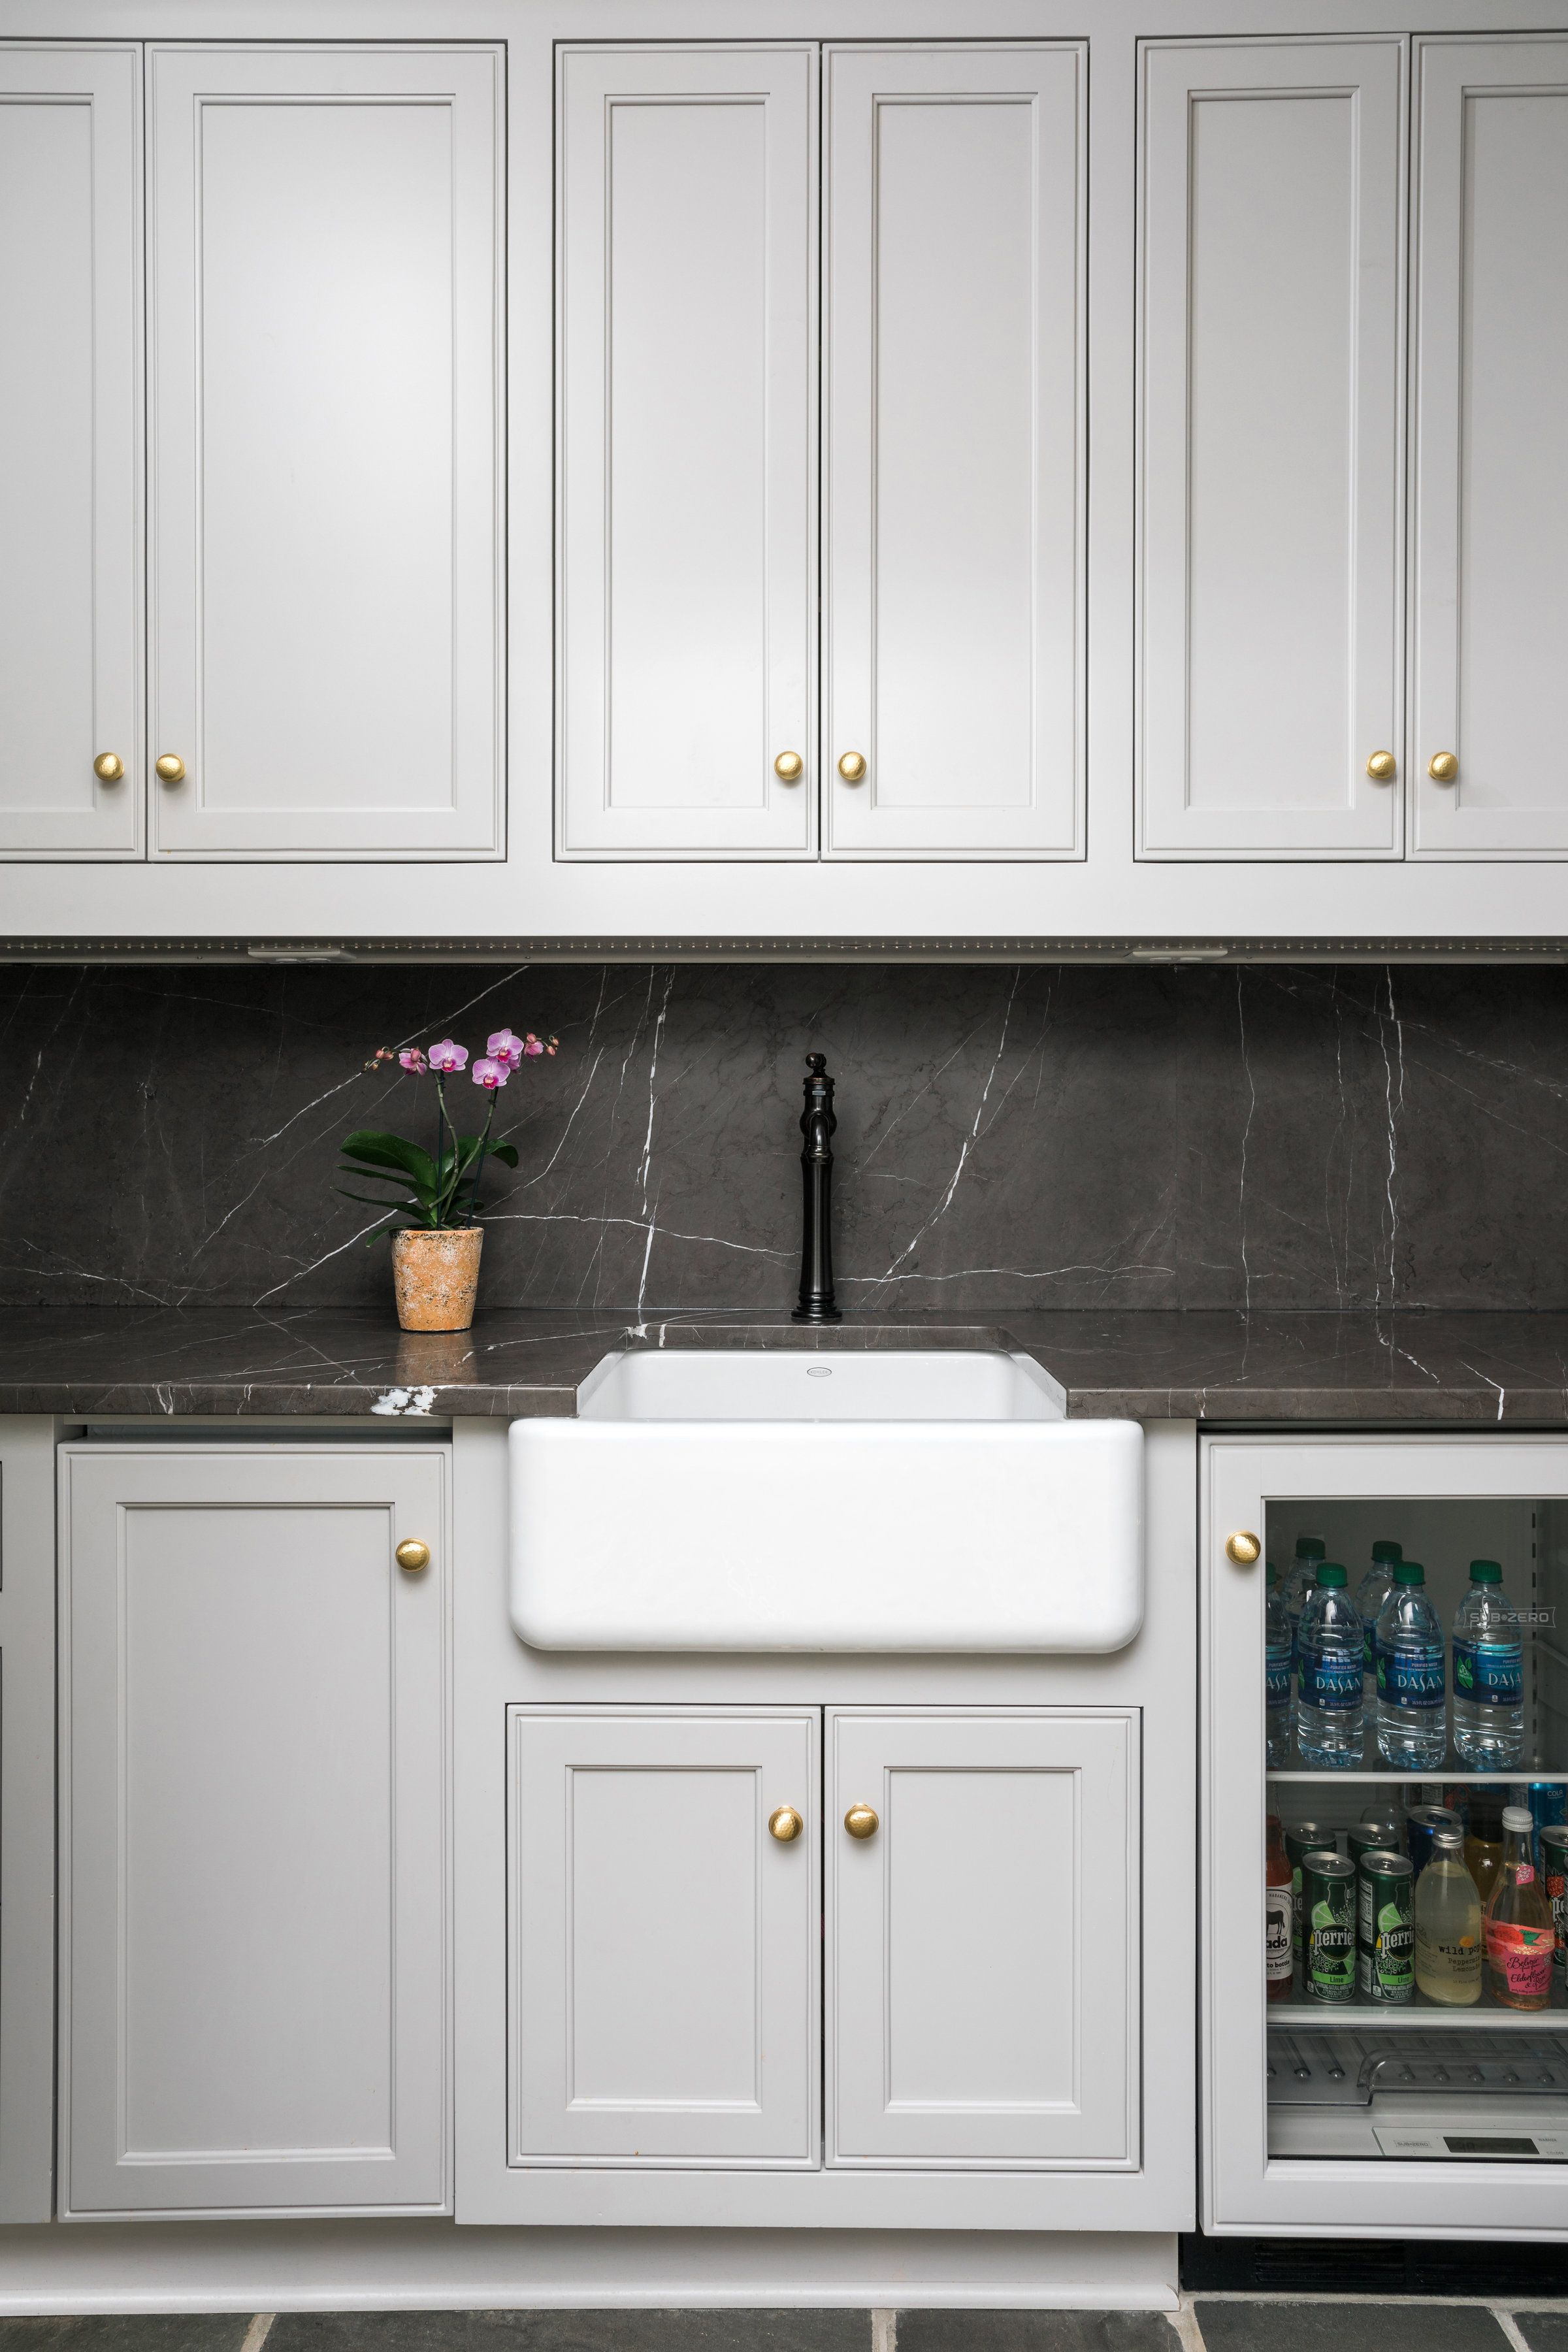 Black Marble Backsplash And Countertops On The Wet Bar With A